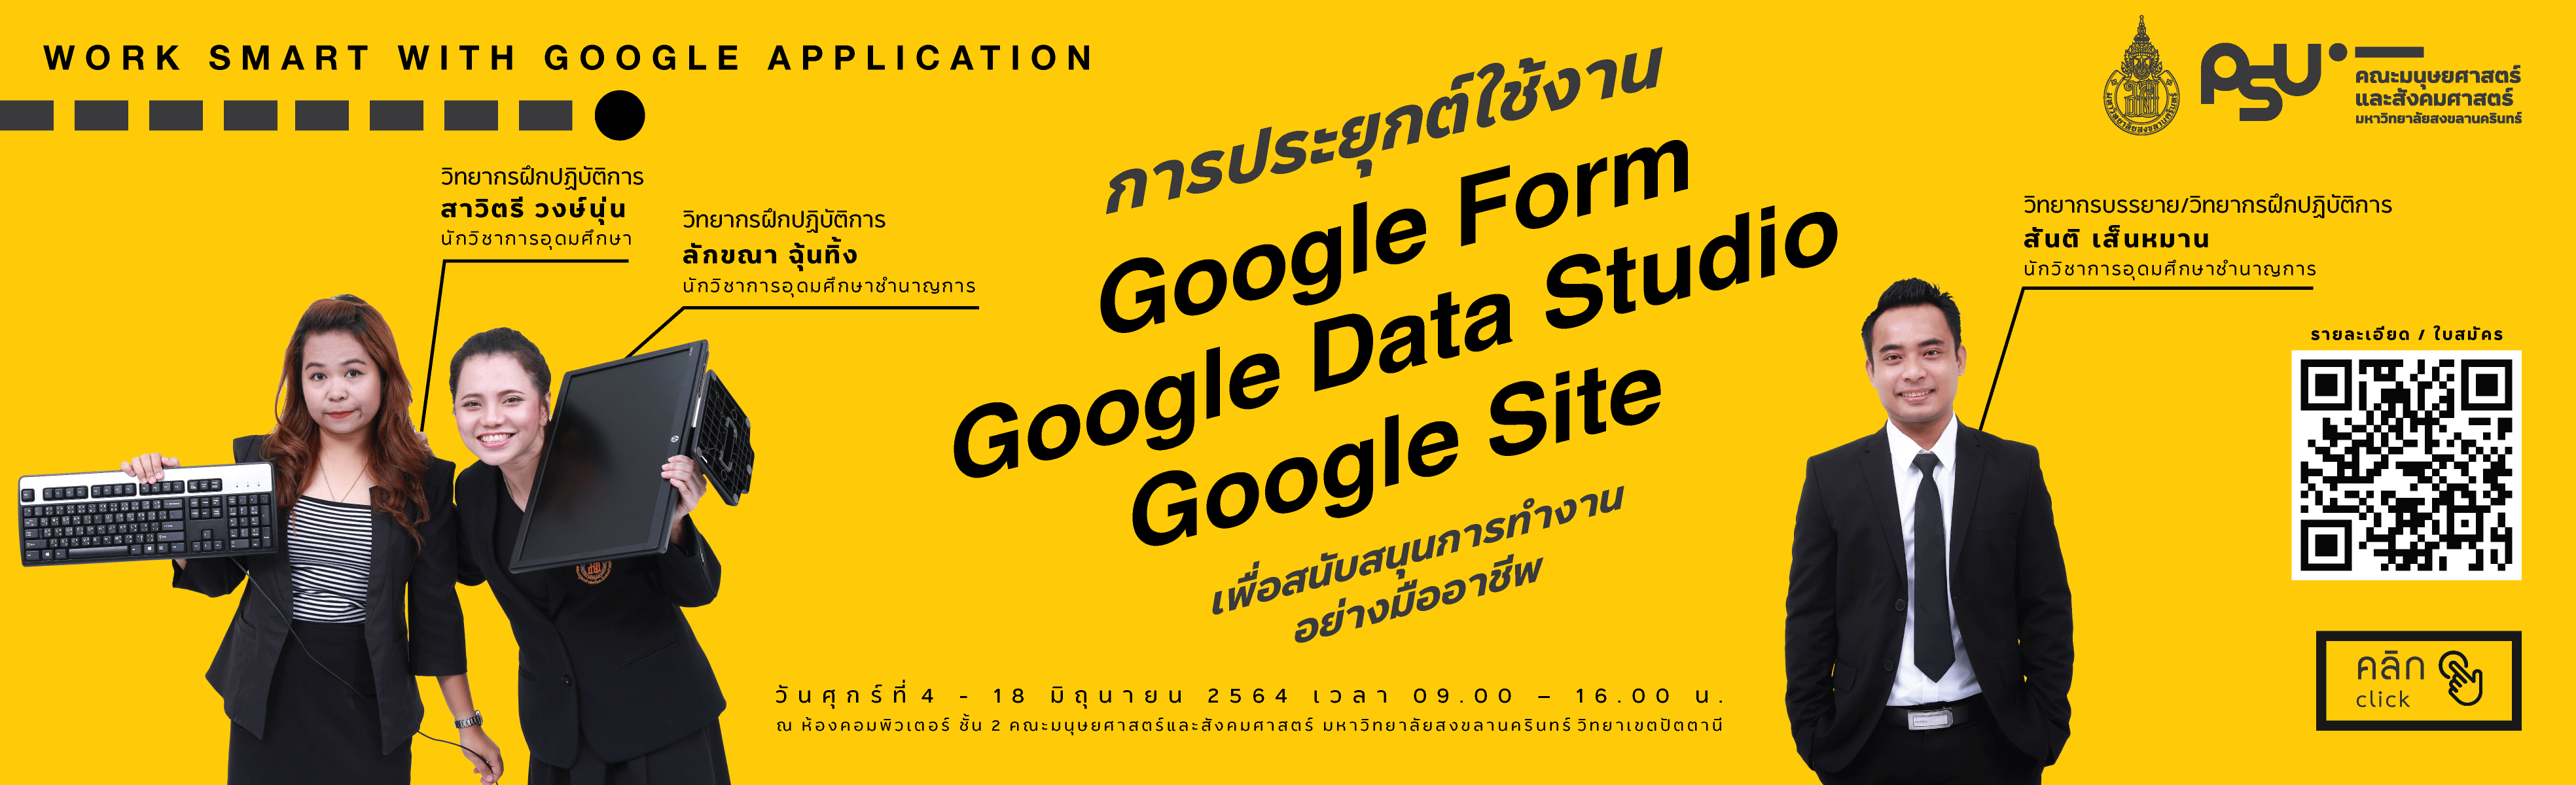 Work_Smart_with_Google_Application_003_forWeb